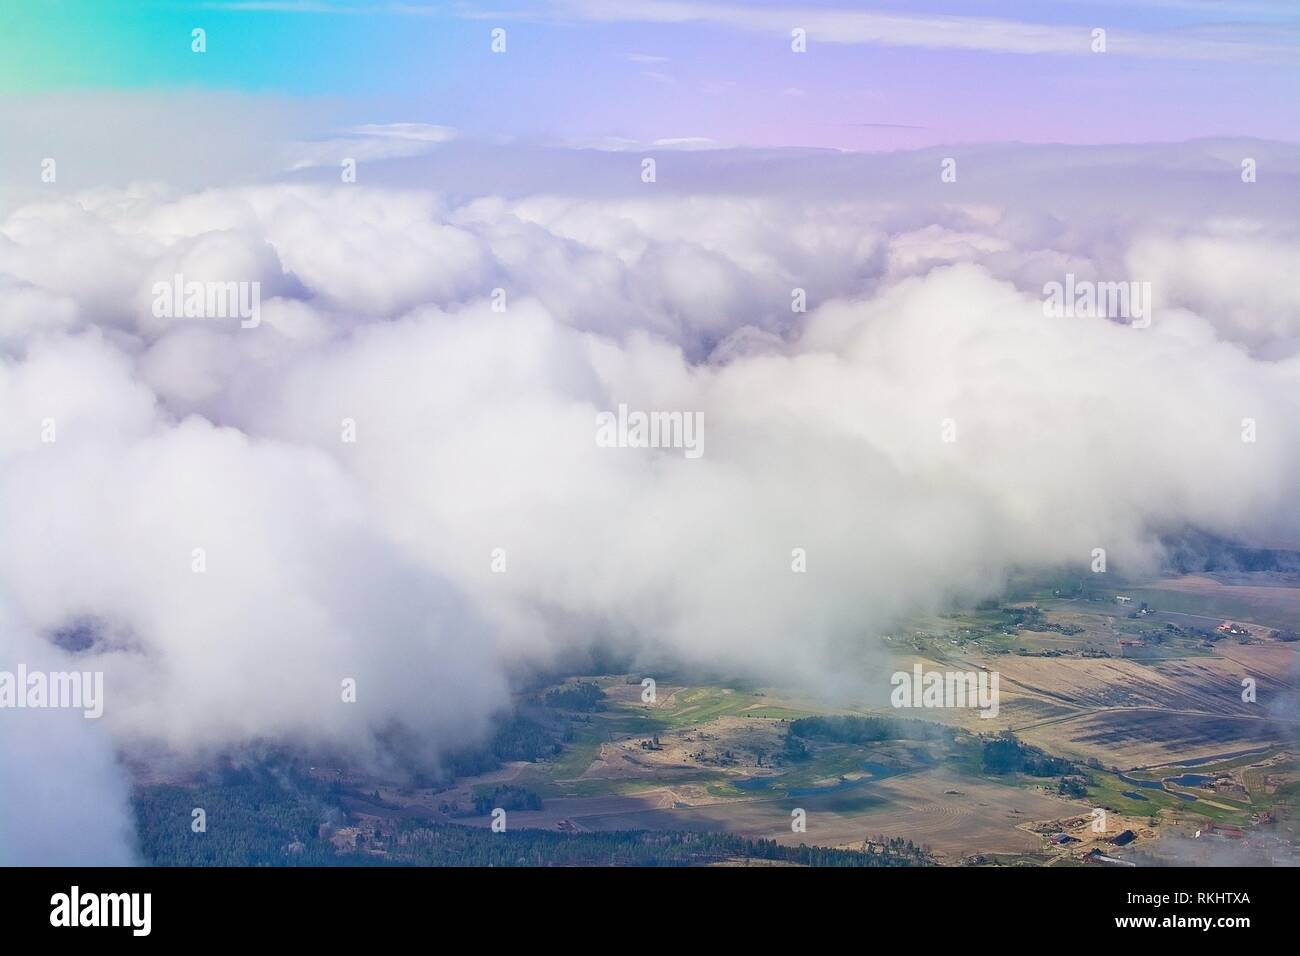 Flight images with clouds in interesting formations near Arlanda airport, Stockholm, Sweden. - Stock Image